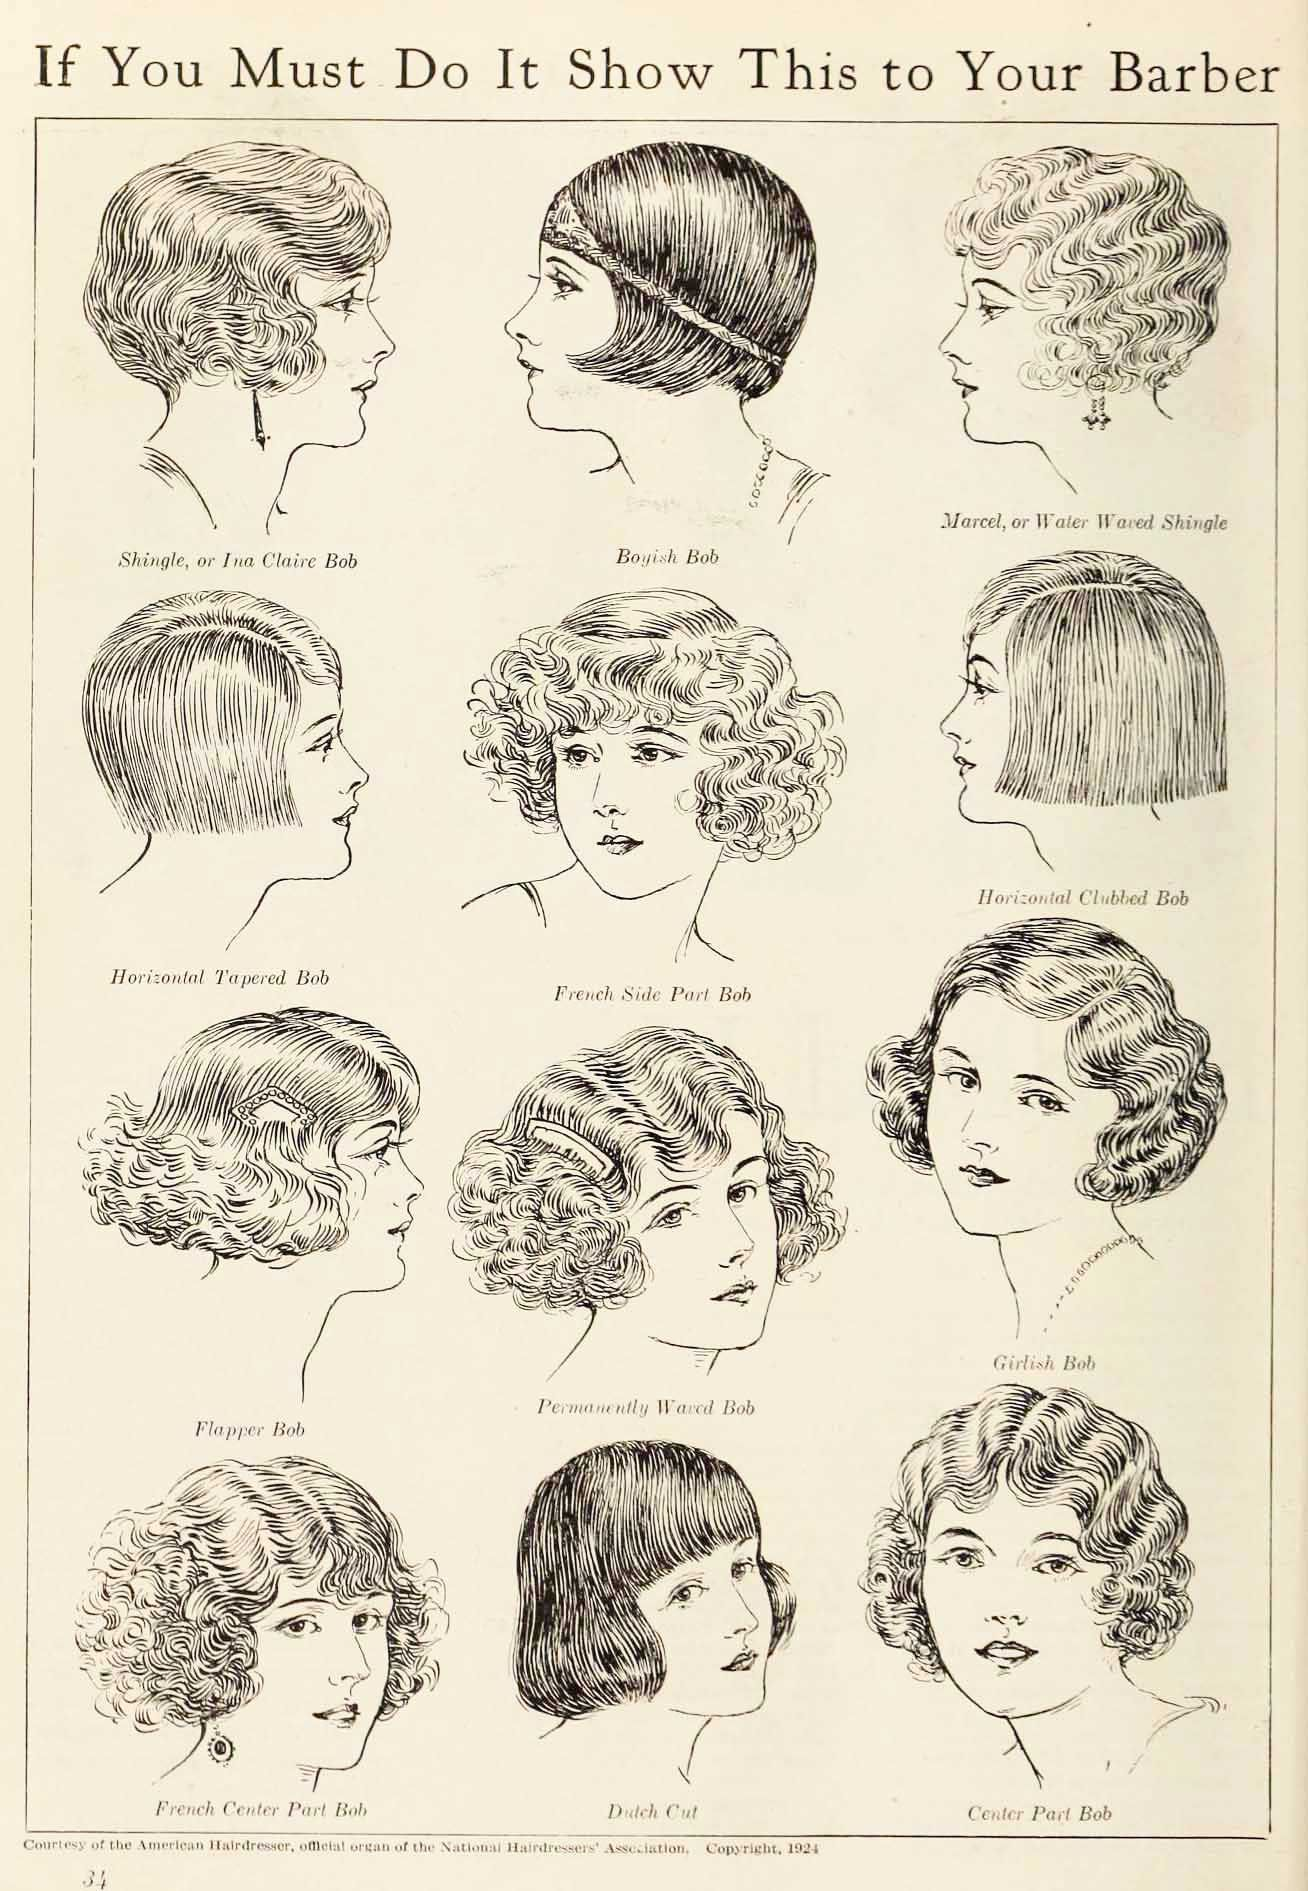 American Hairdresser Guide To 1920s Hairstyles Published In 1924 Courtesy Of National Hairdresser S Associatio Flapper Hair 1920s Hair Vintage Bob Hairstyle